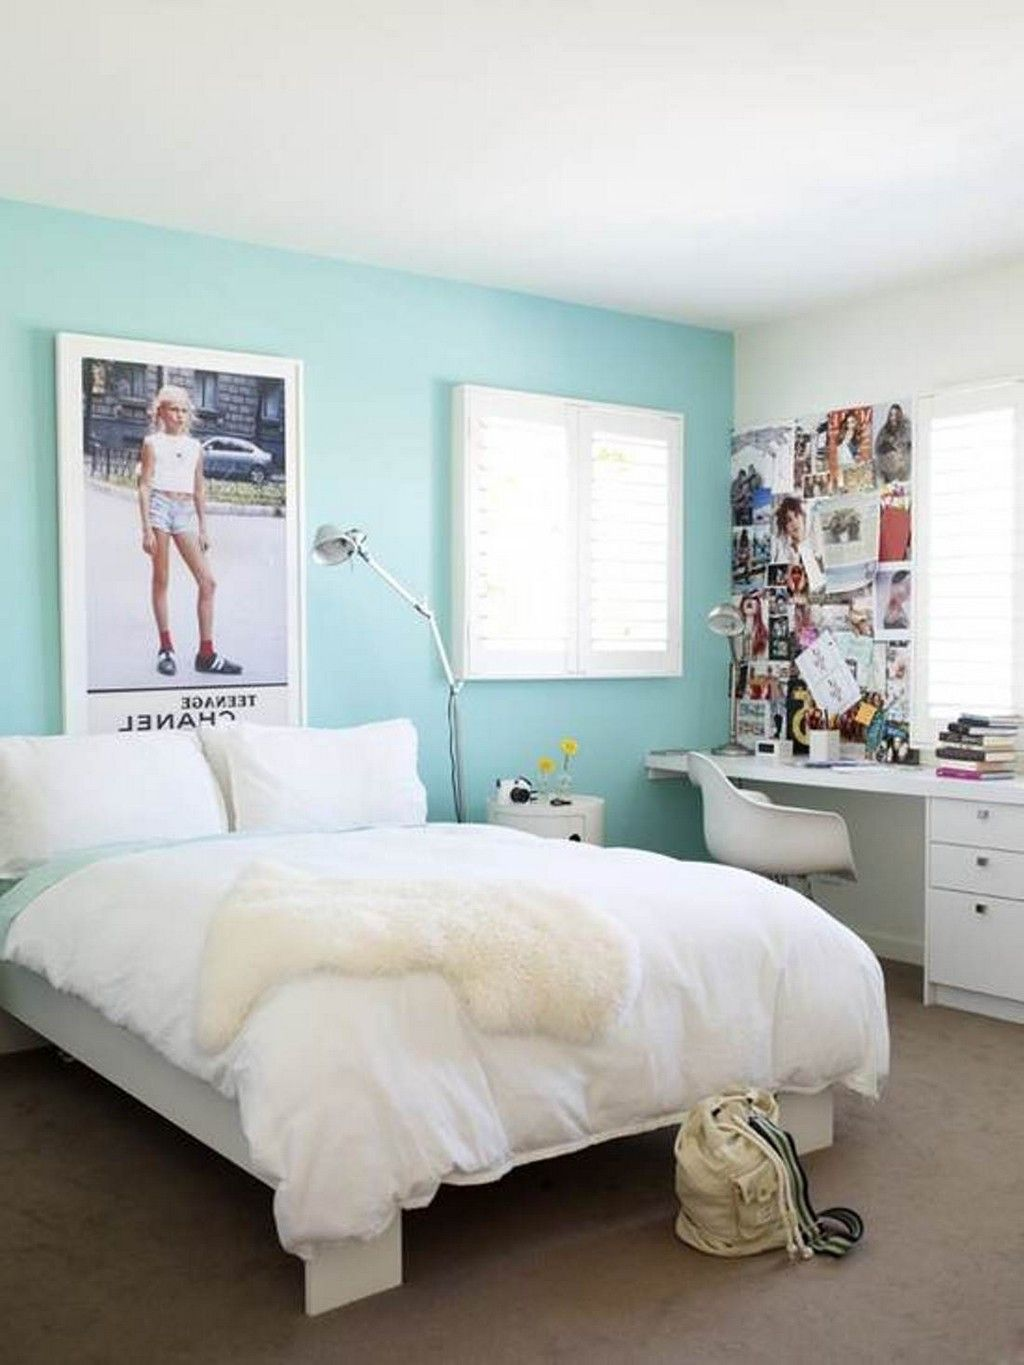 Unique bedroom wall paint ideas - Bedroom Calming Blue Paint Colors For Small Teen Bedroom Ideas